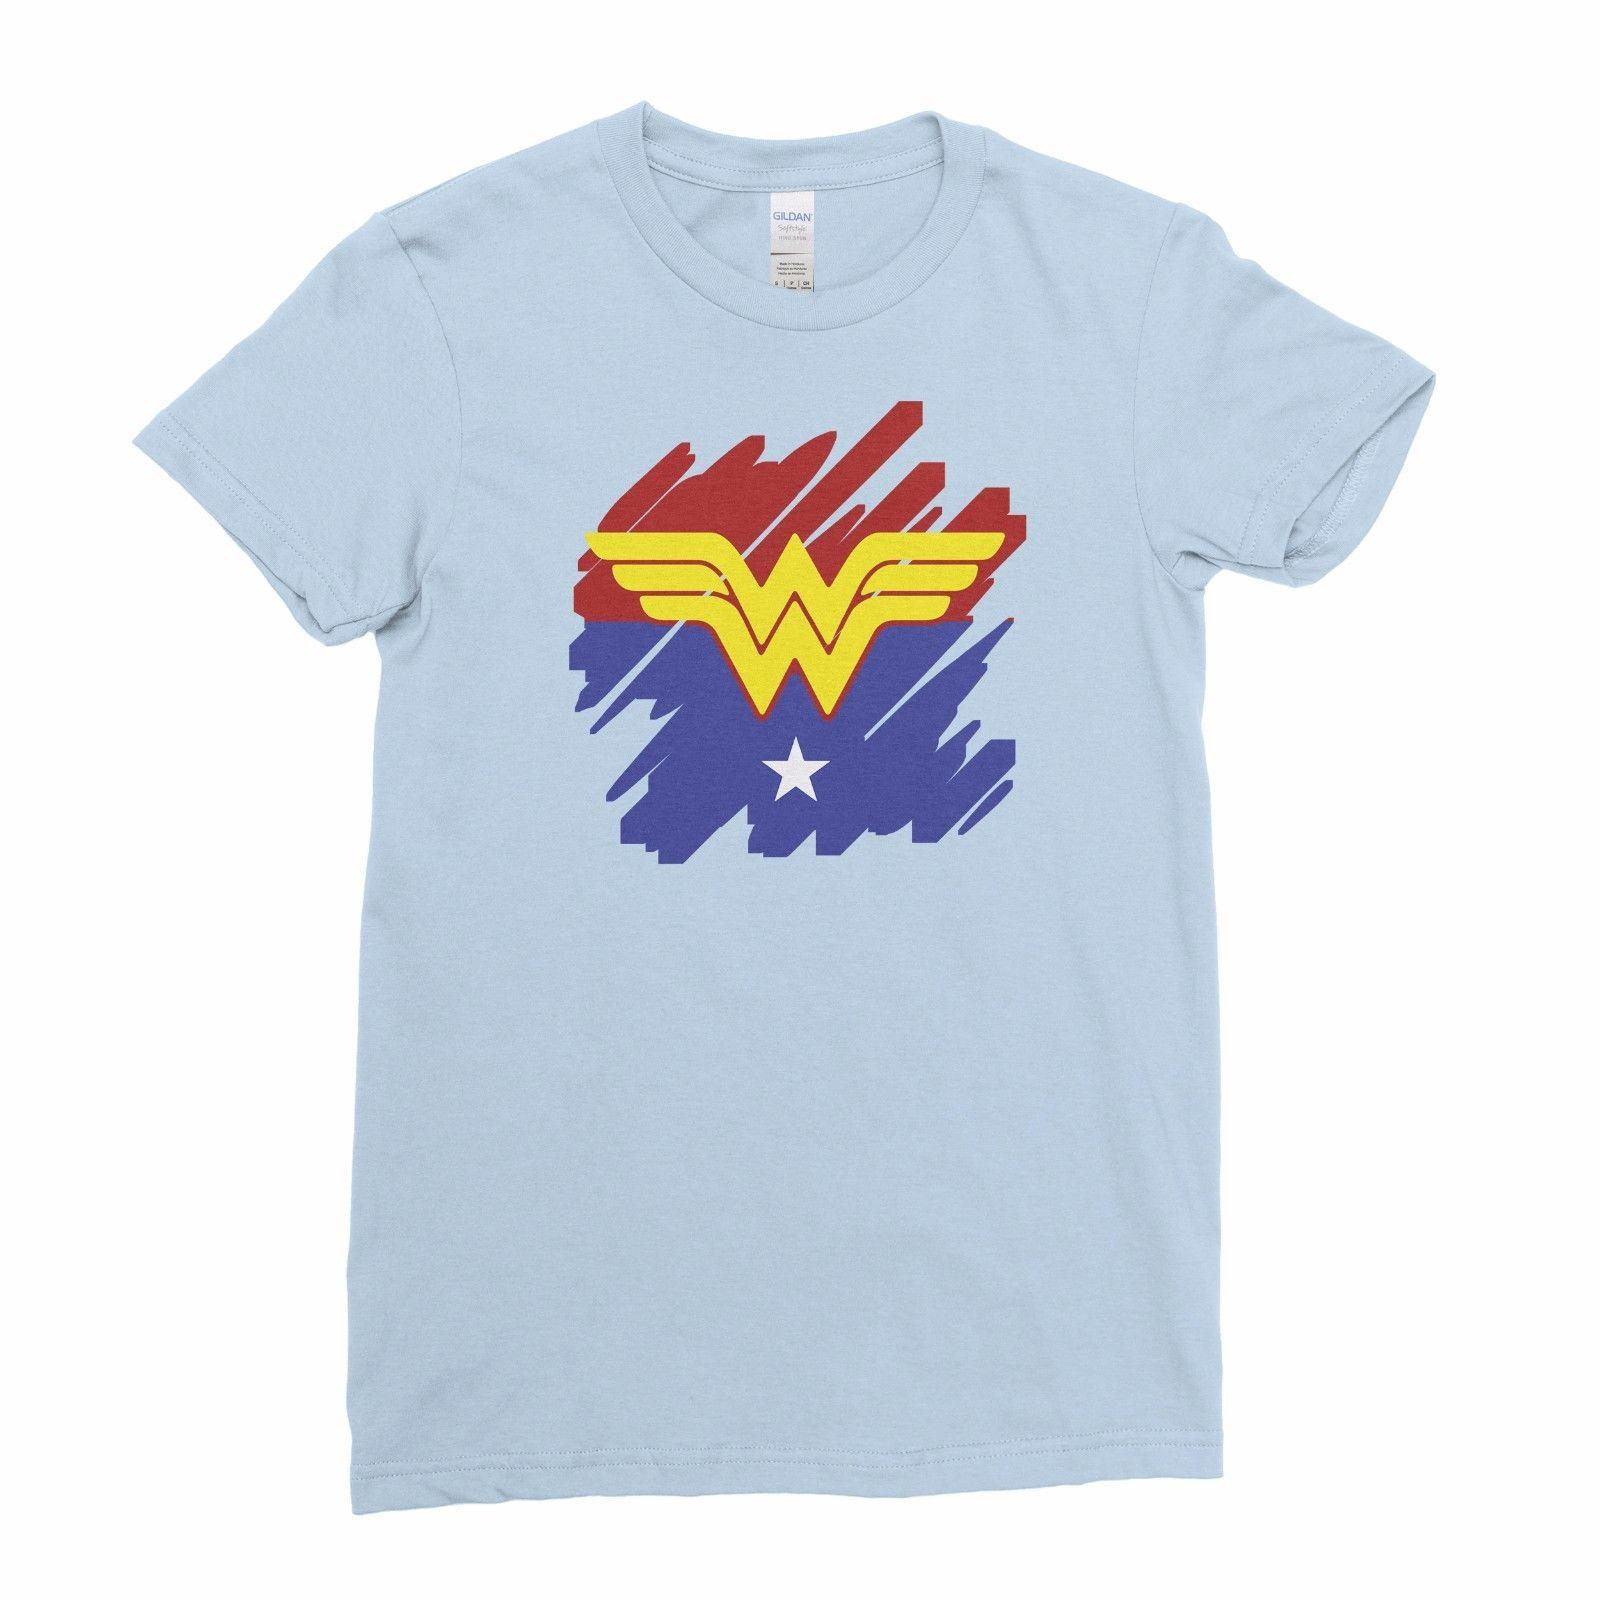 f52963e4724d Wonder Woman Diana Comic Superhero Women T Shirt Tee Top Art Cool Casual  Pride T Shirt Men Unisex New Fashion Tshirt T Shirt Shop Design Crazy T  Shirts ...